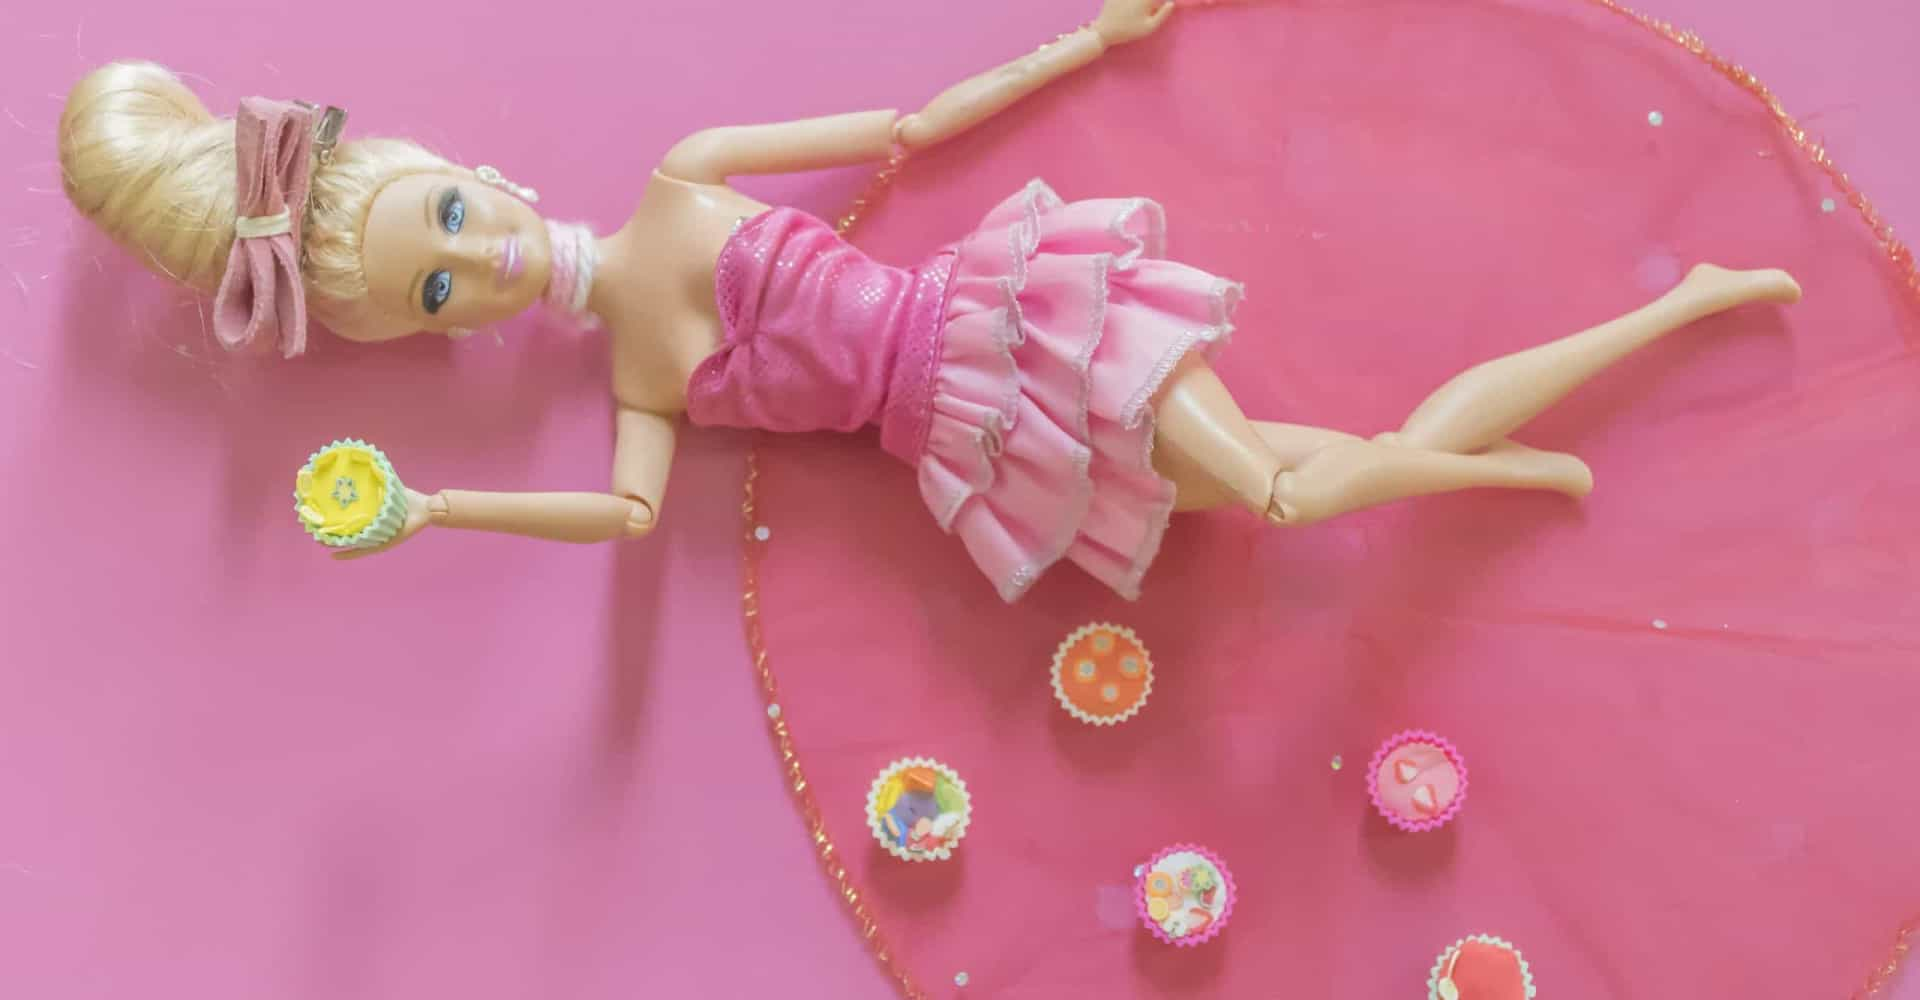 Barbie turns 60: Was her life in plastic always fantastic?